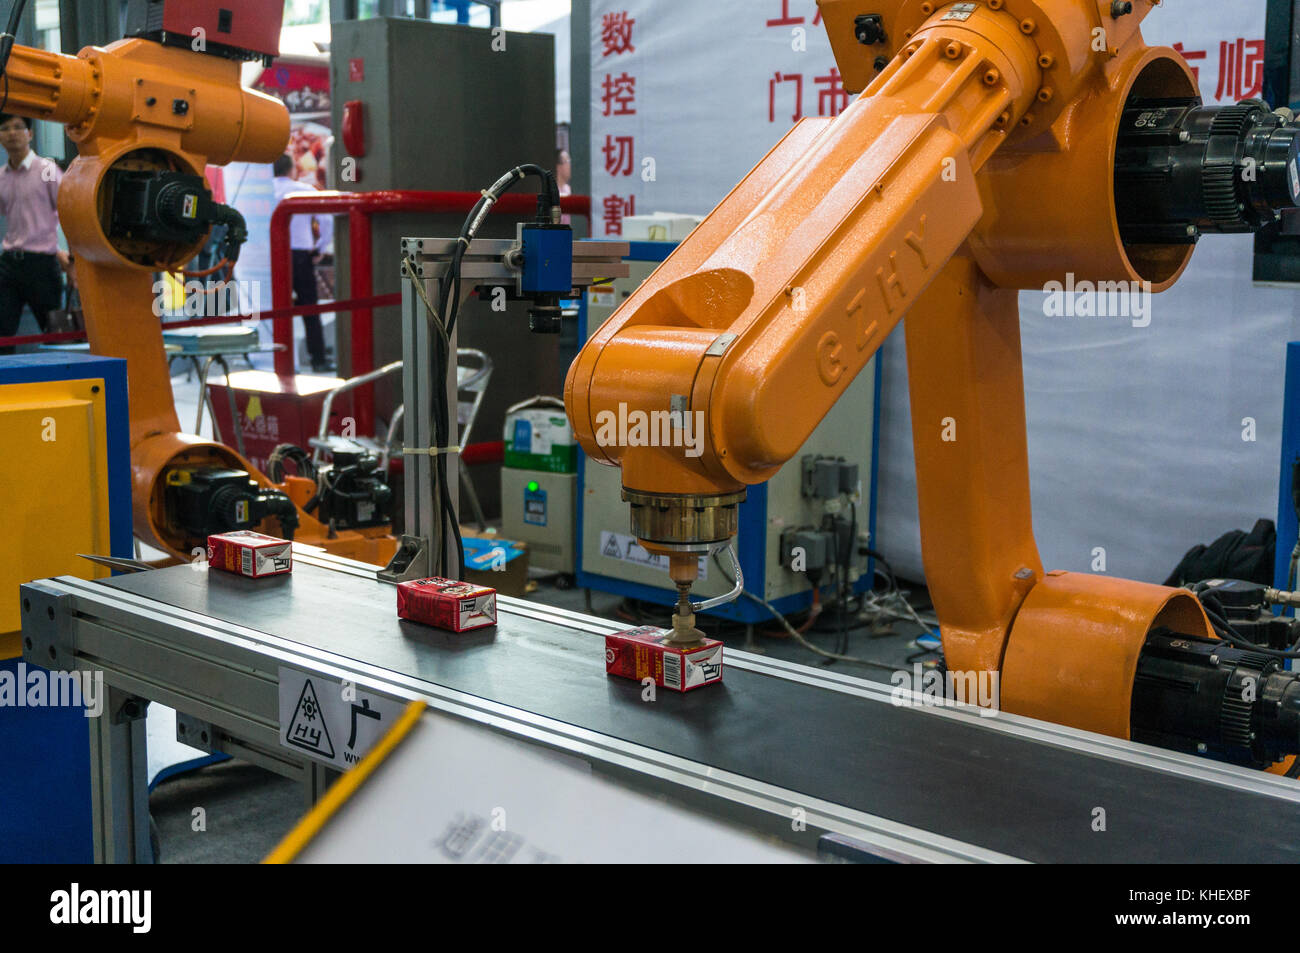 Robot food and beverage production robots at China hi-tech fair in Shenzhen, known as 'Silicon Valley of China', - Stock Image